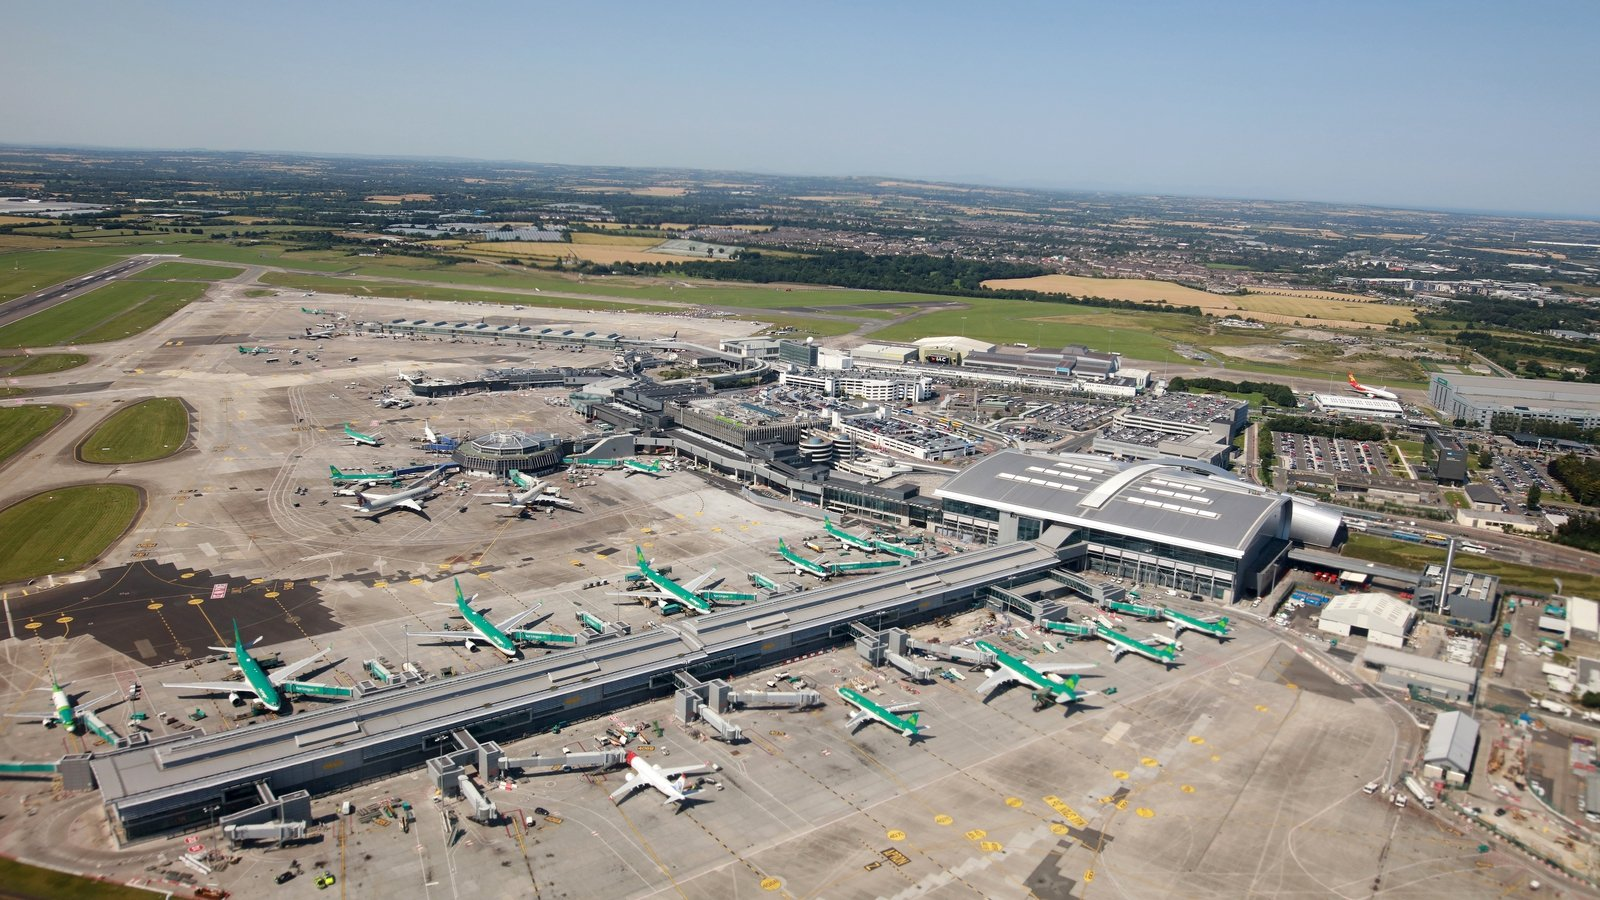 Dublin Airport flights suspended due to drone